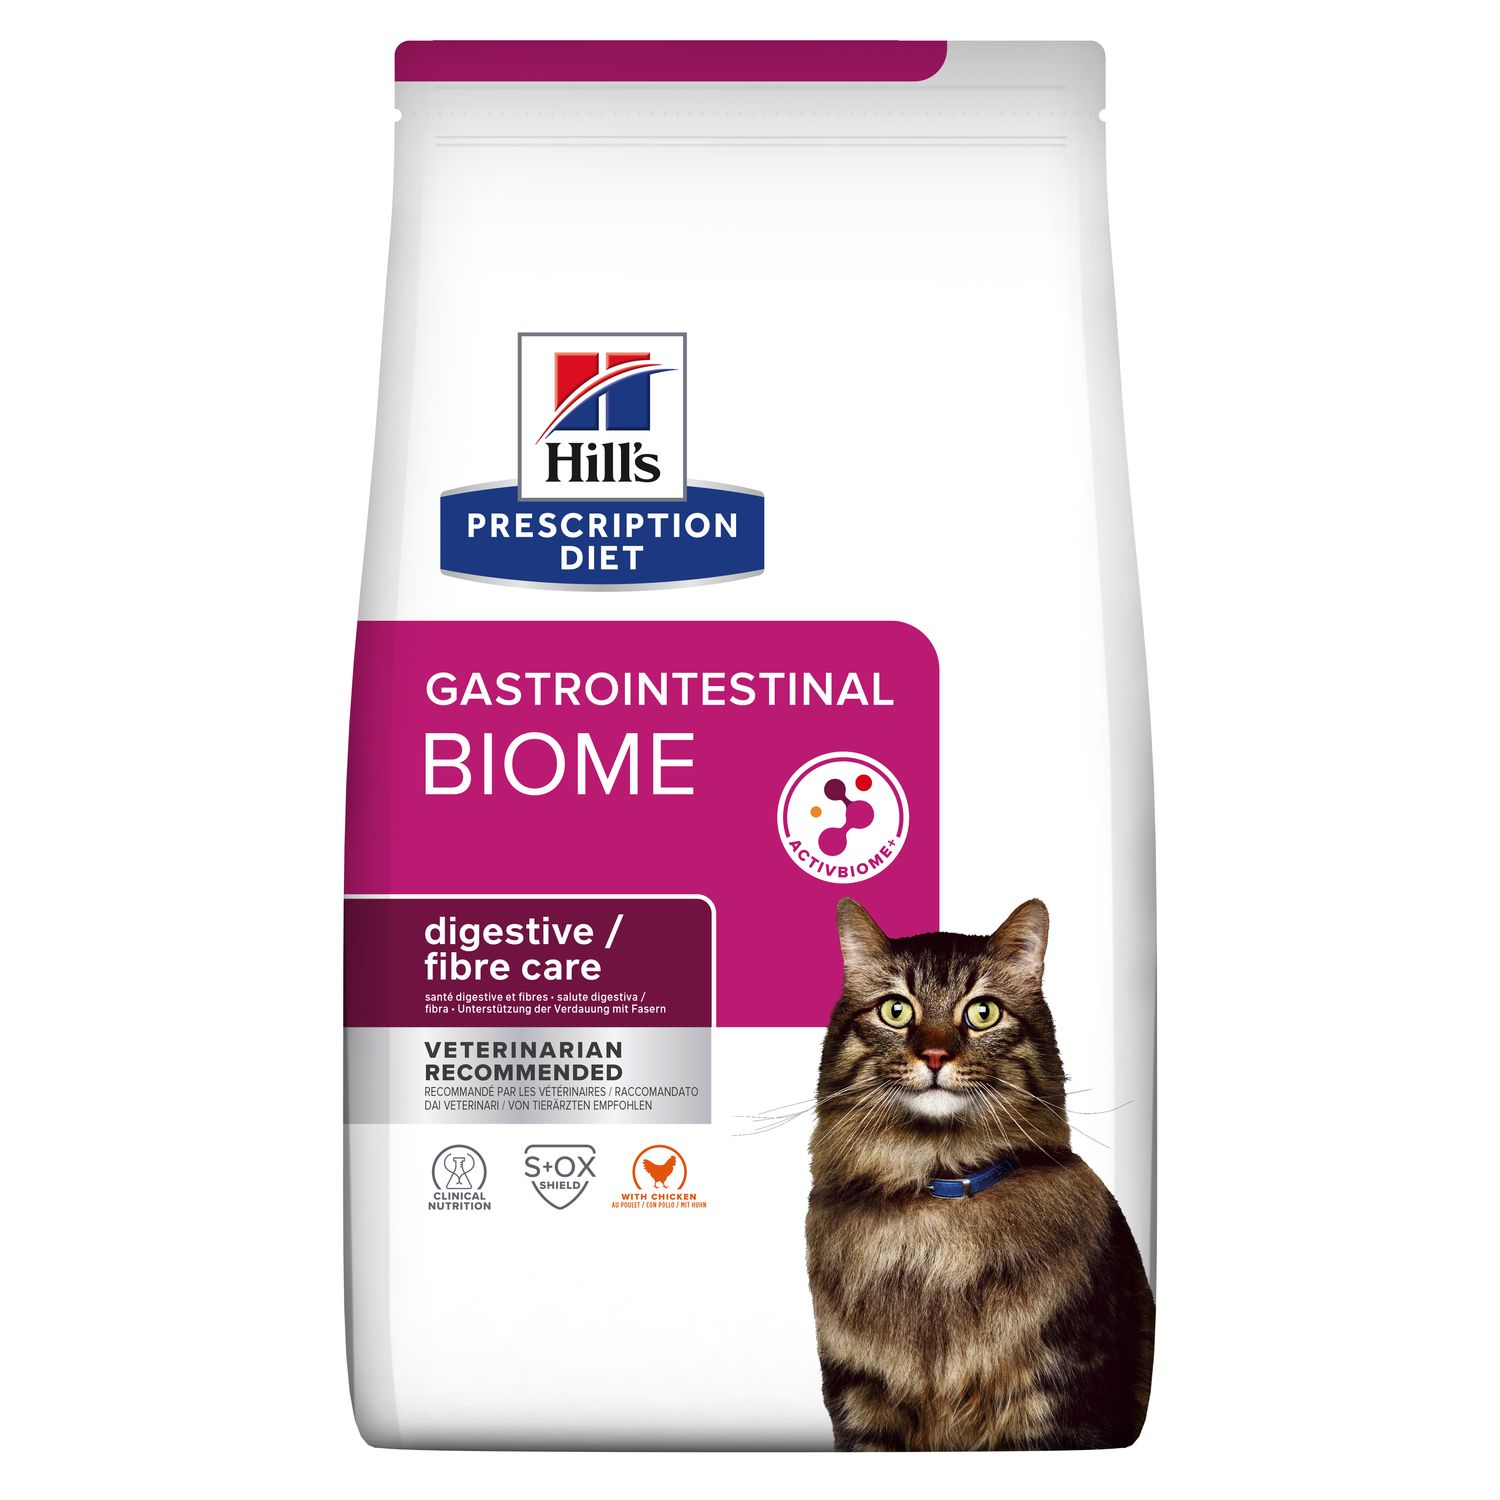 Hill S Prescription Diet Gastrointestional Biome Cat Food With Chicken